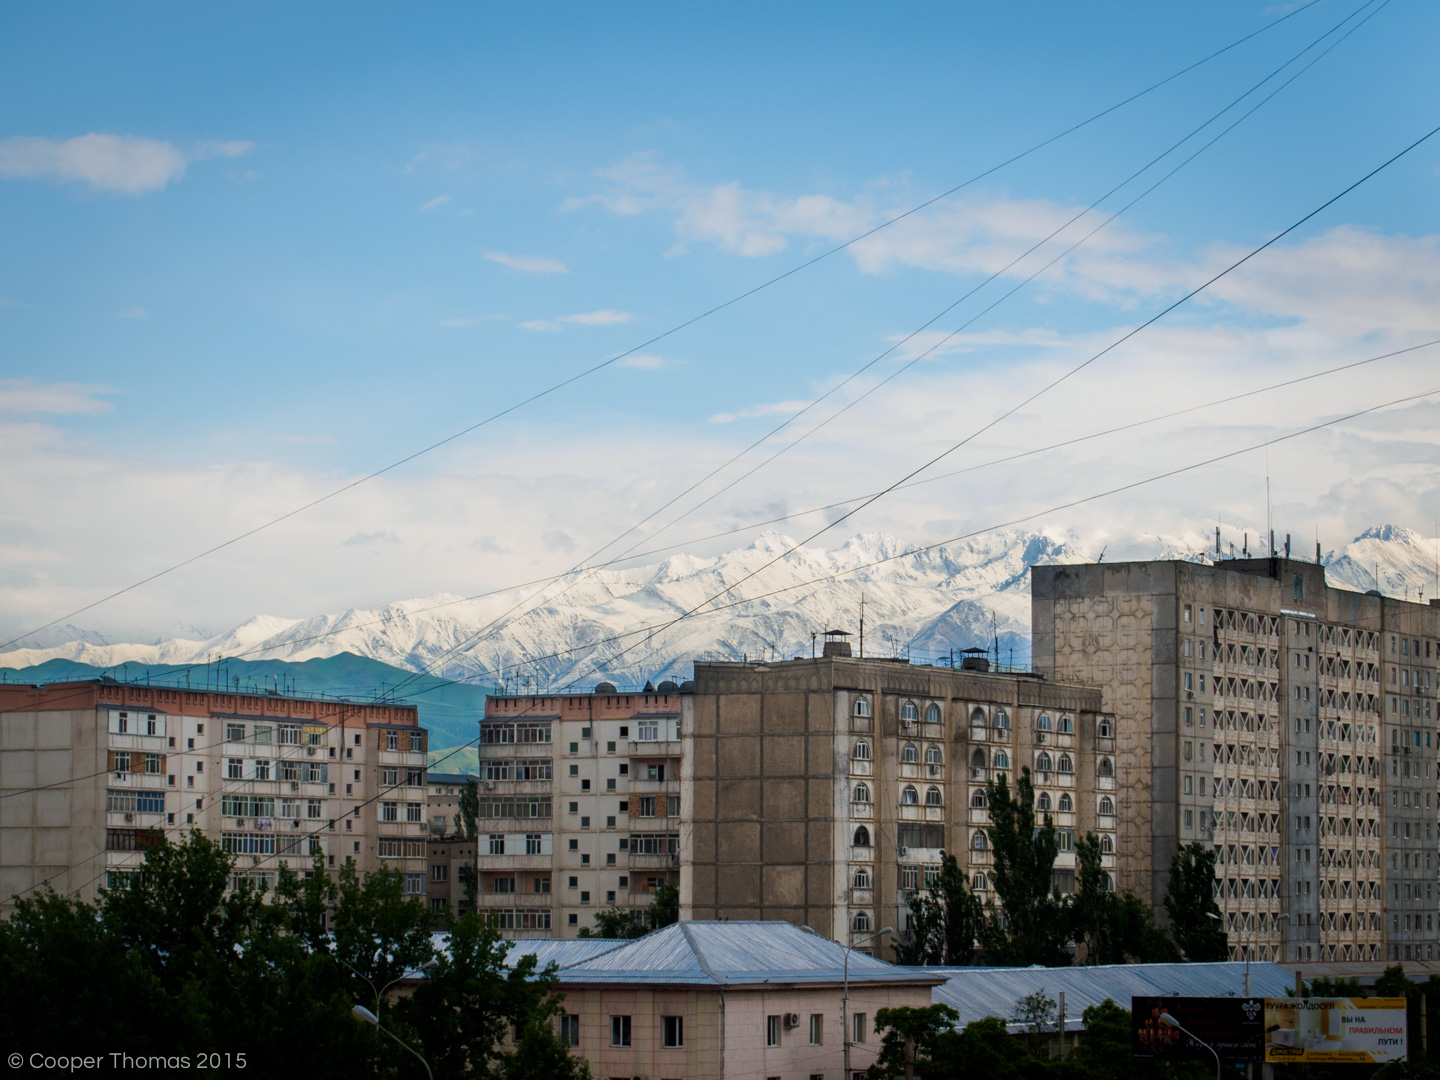 Typical pre-fabricated apartment buildings in Bishkek